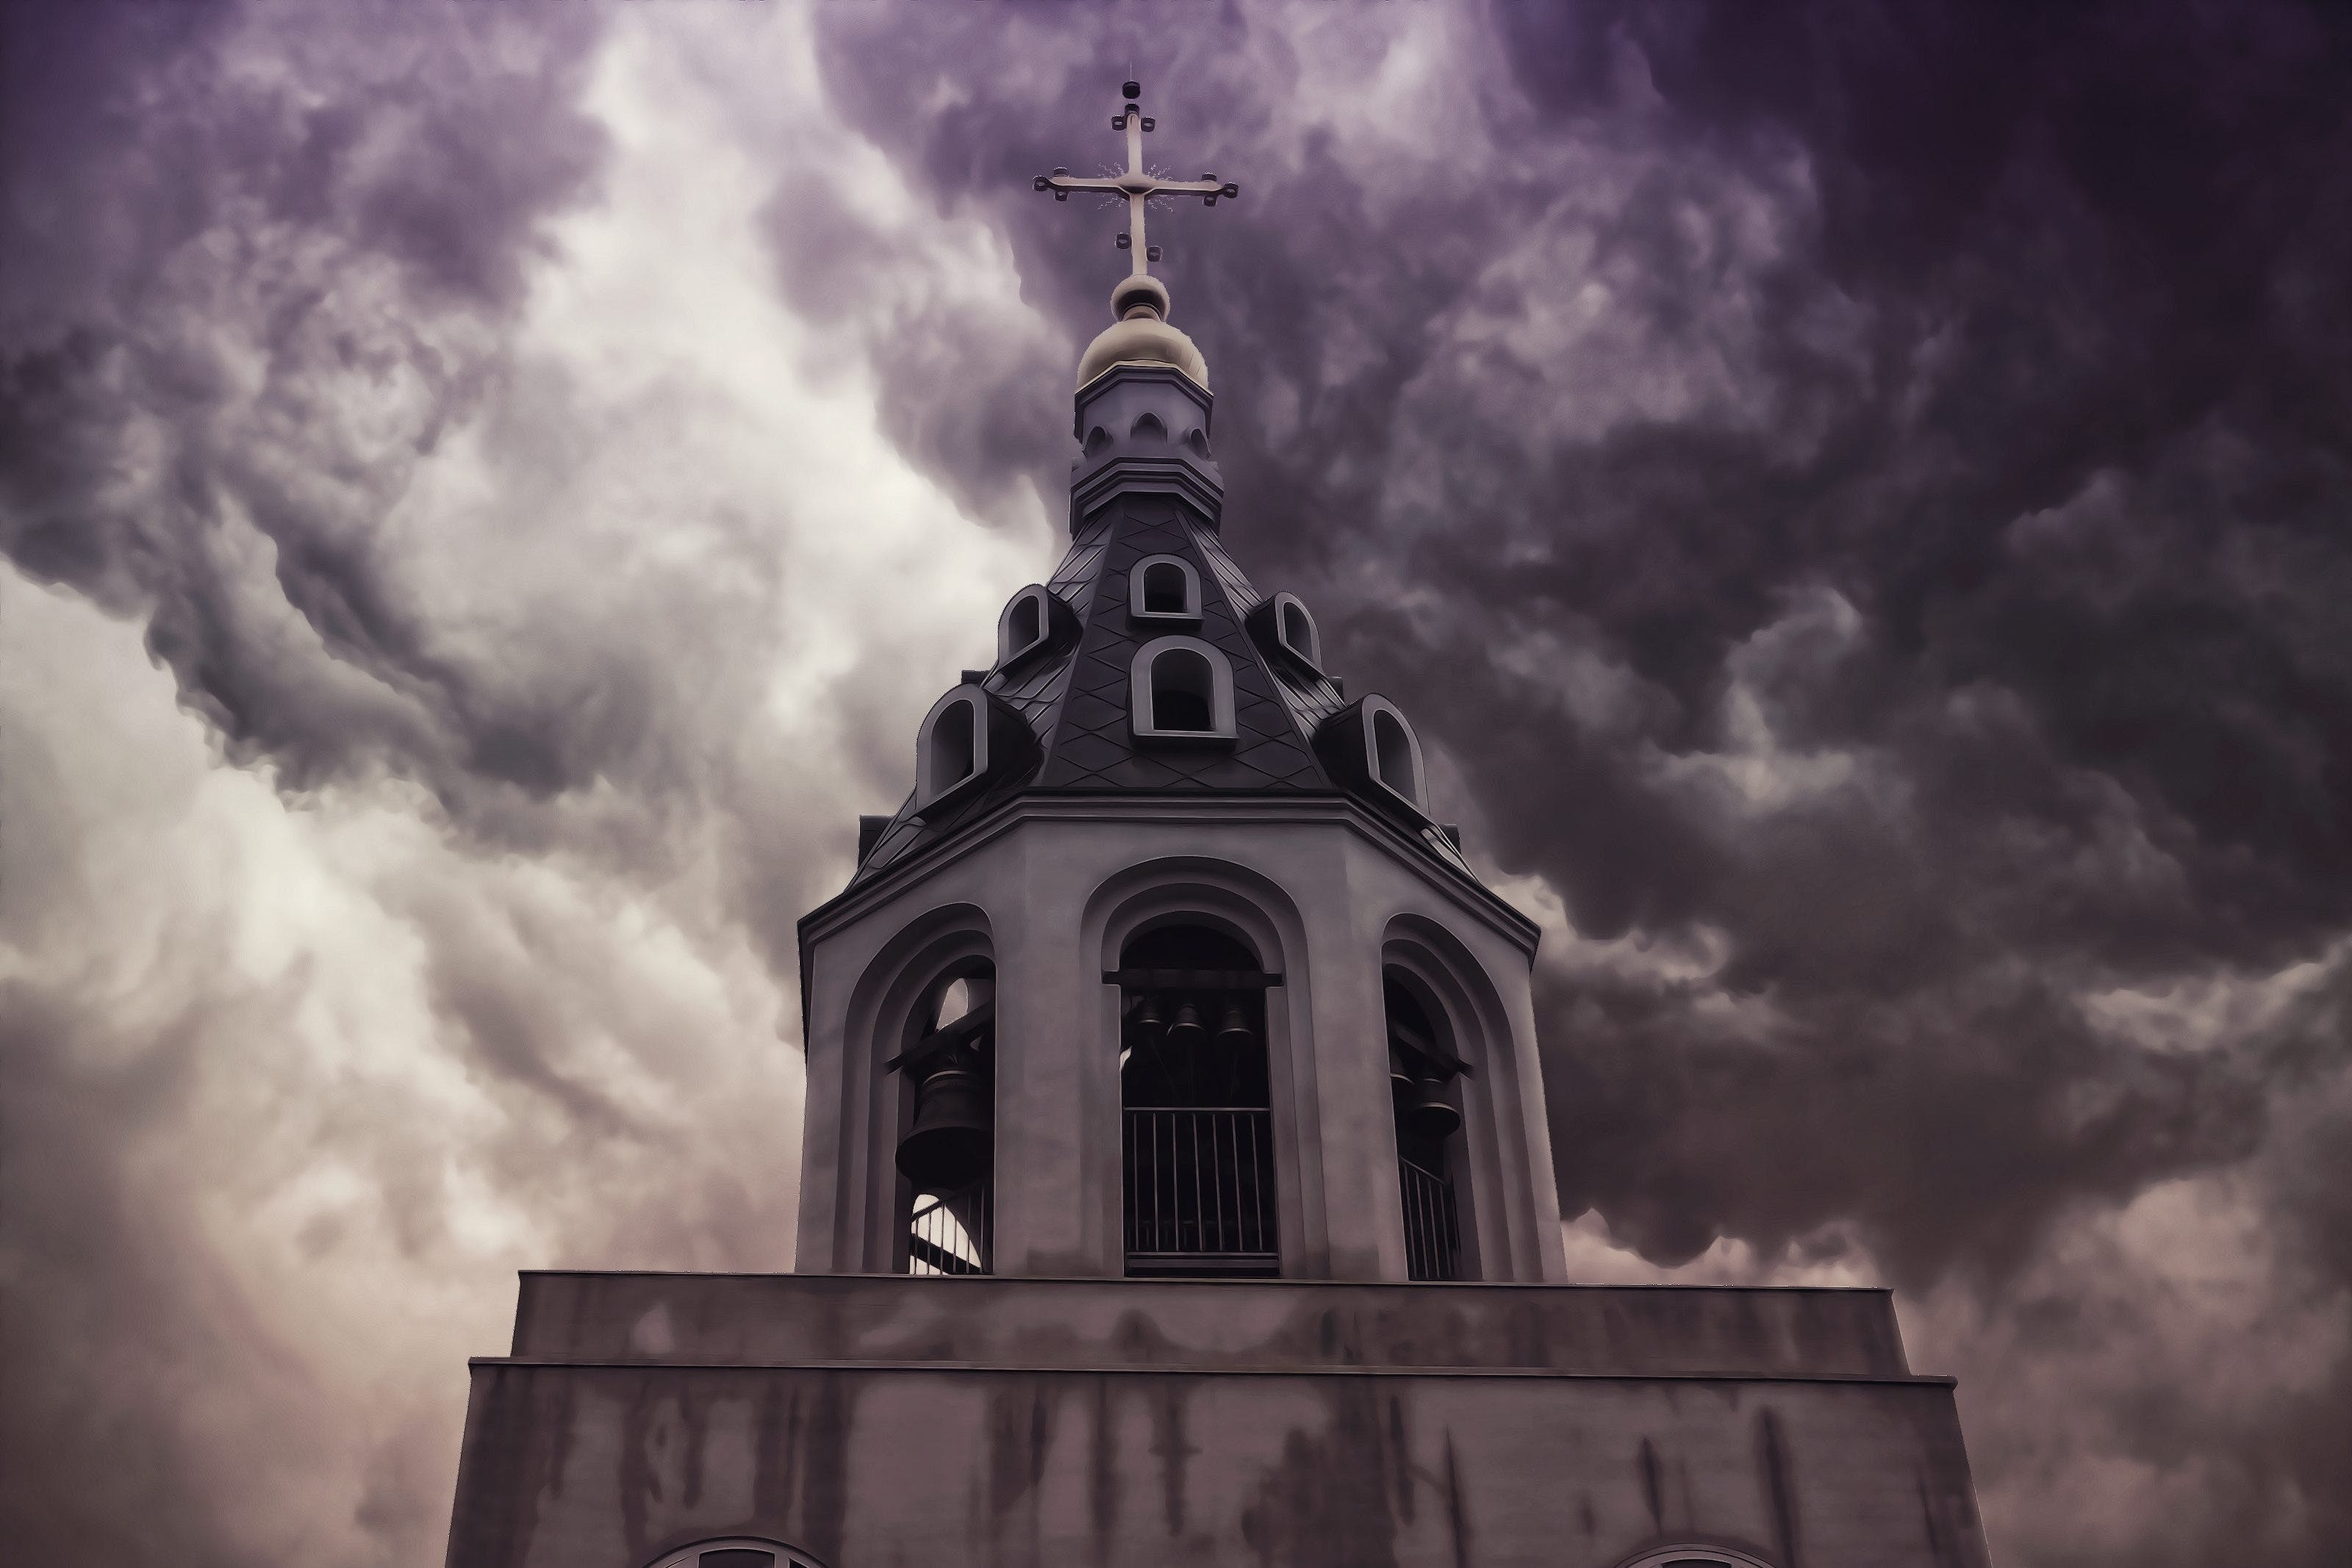 Concrete Cathedral Under Cloudy Sky